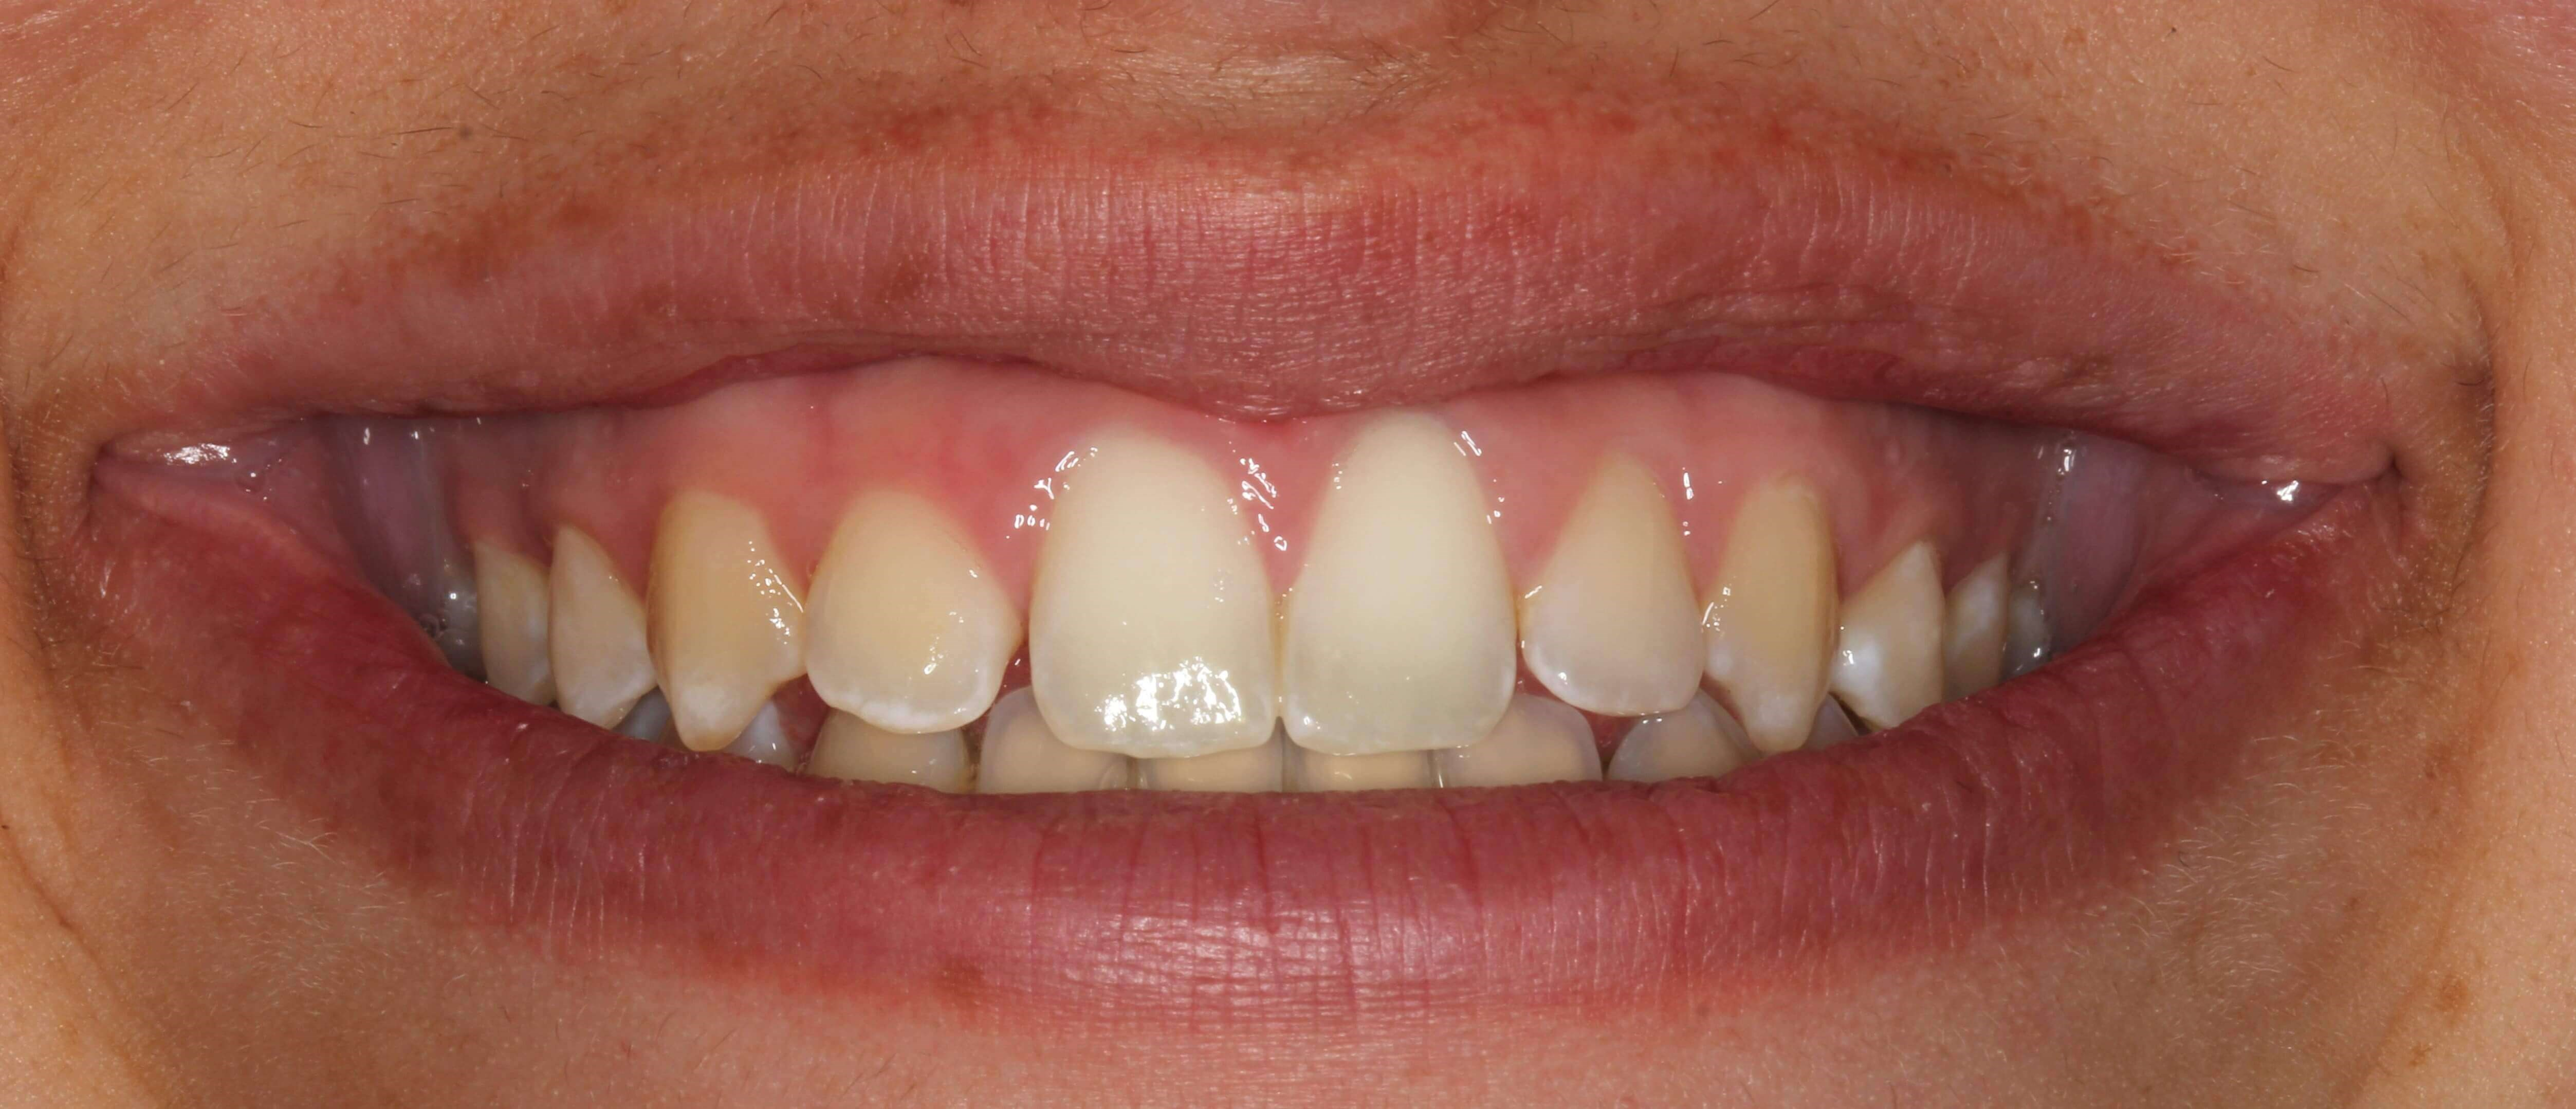 Crown Lengthening & Veneers Before